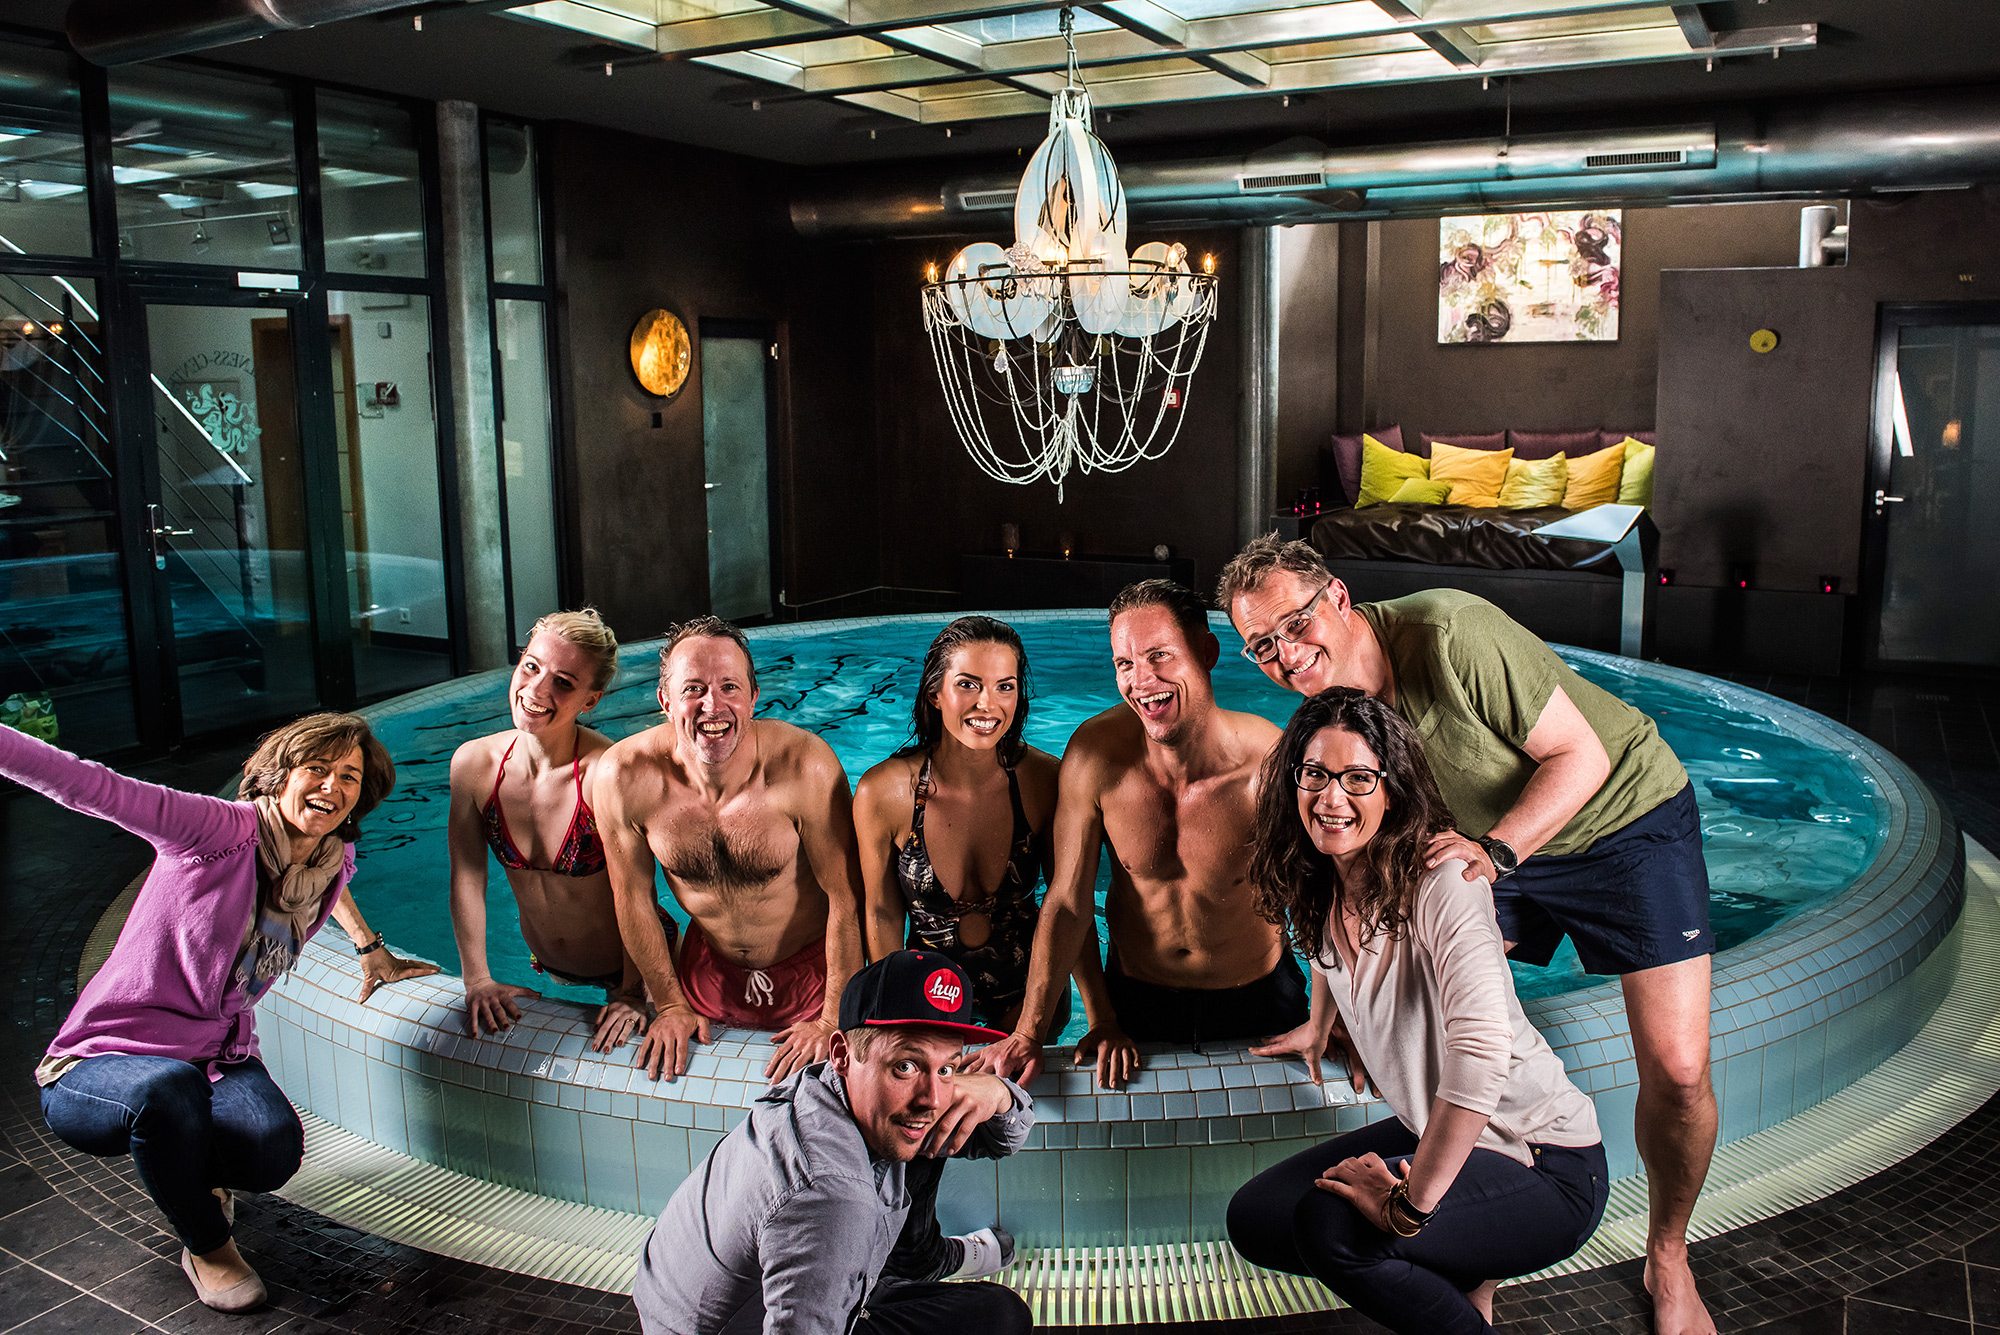 Making of nach dem Shooting im Spa des exklusiven  Hotel Coeur des alpes in Zermatt. Von links nach rechts: Gastgeberin Lena Müller-Julen, Rahel Gonzales, Remo Neuhaus, Andjela Milanovic, Thilo Larsson, Fabienne Steffen, Luc Pauchard und vorne in sexy Schlarpen Enrico Bizzarro :-).